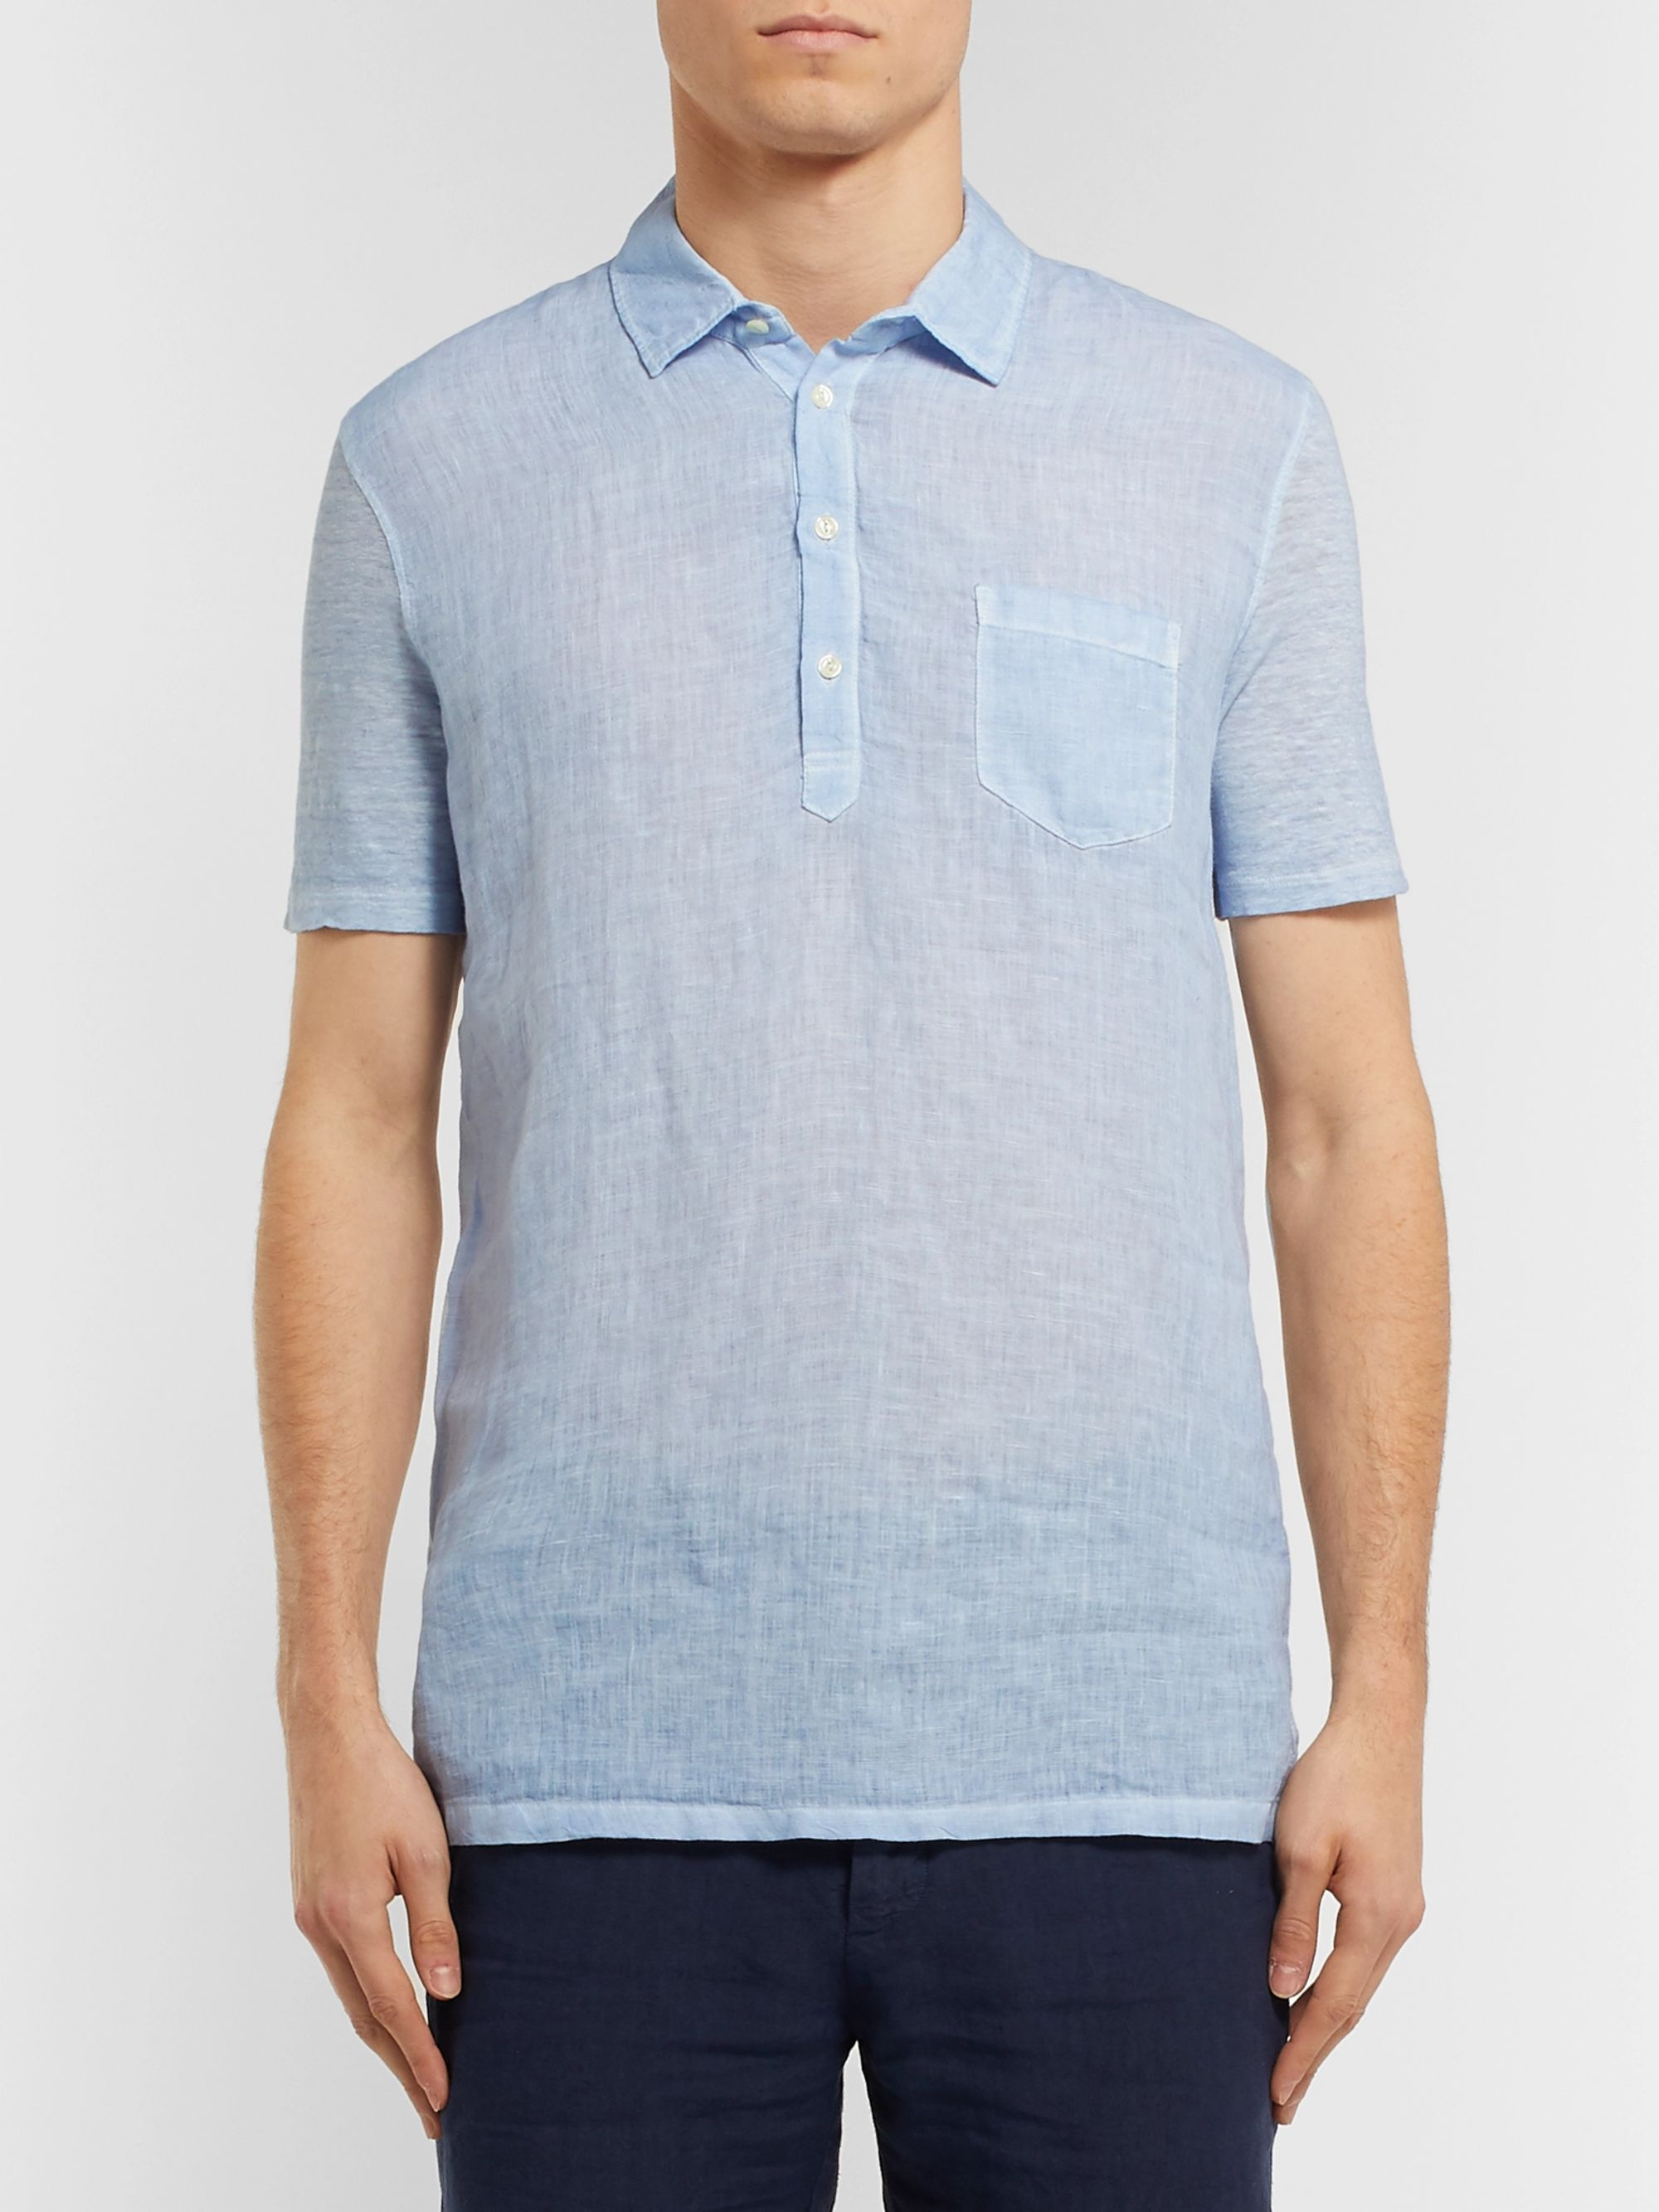 120% Slub Linen Polo Shirt